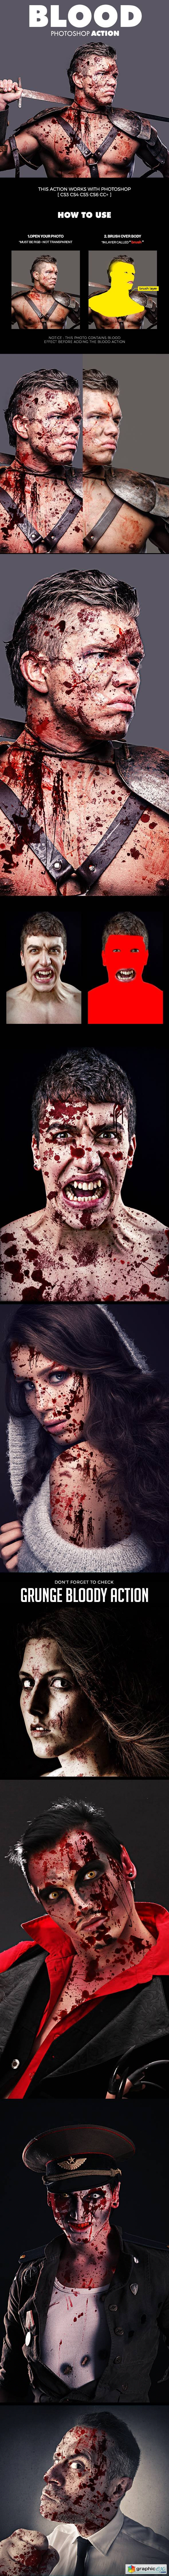 Blood Photoshop Action